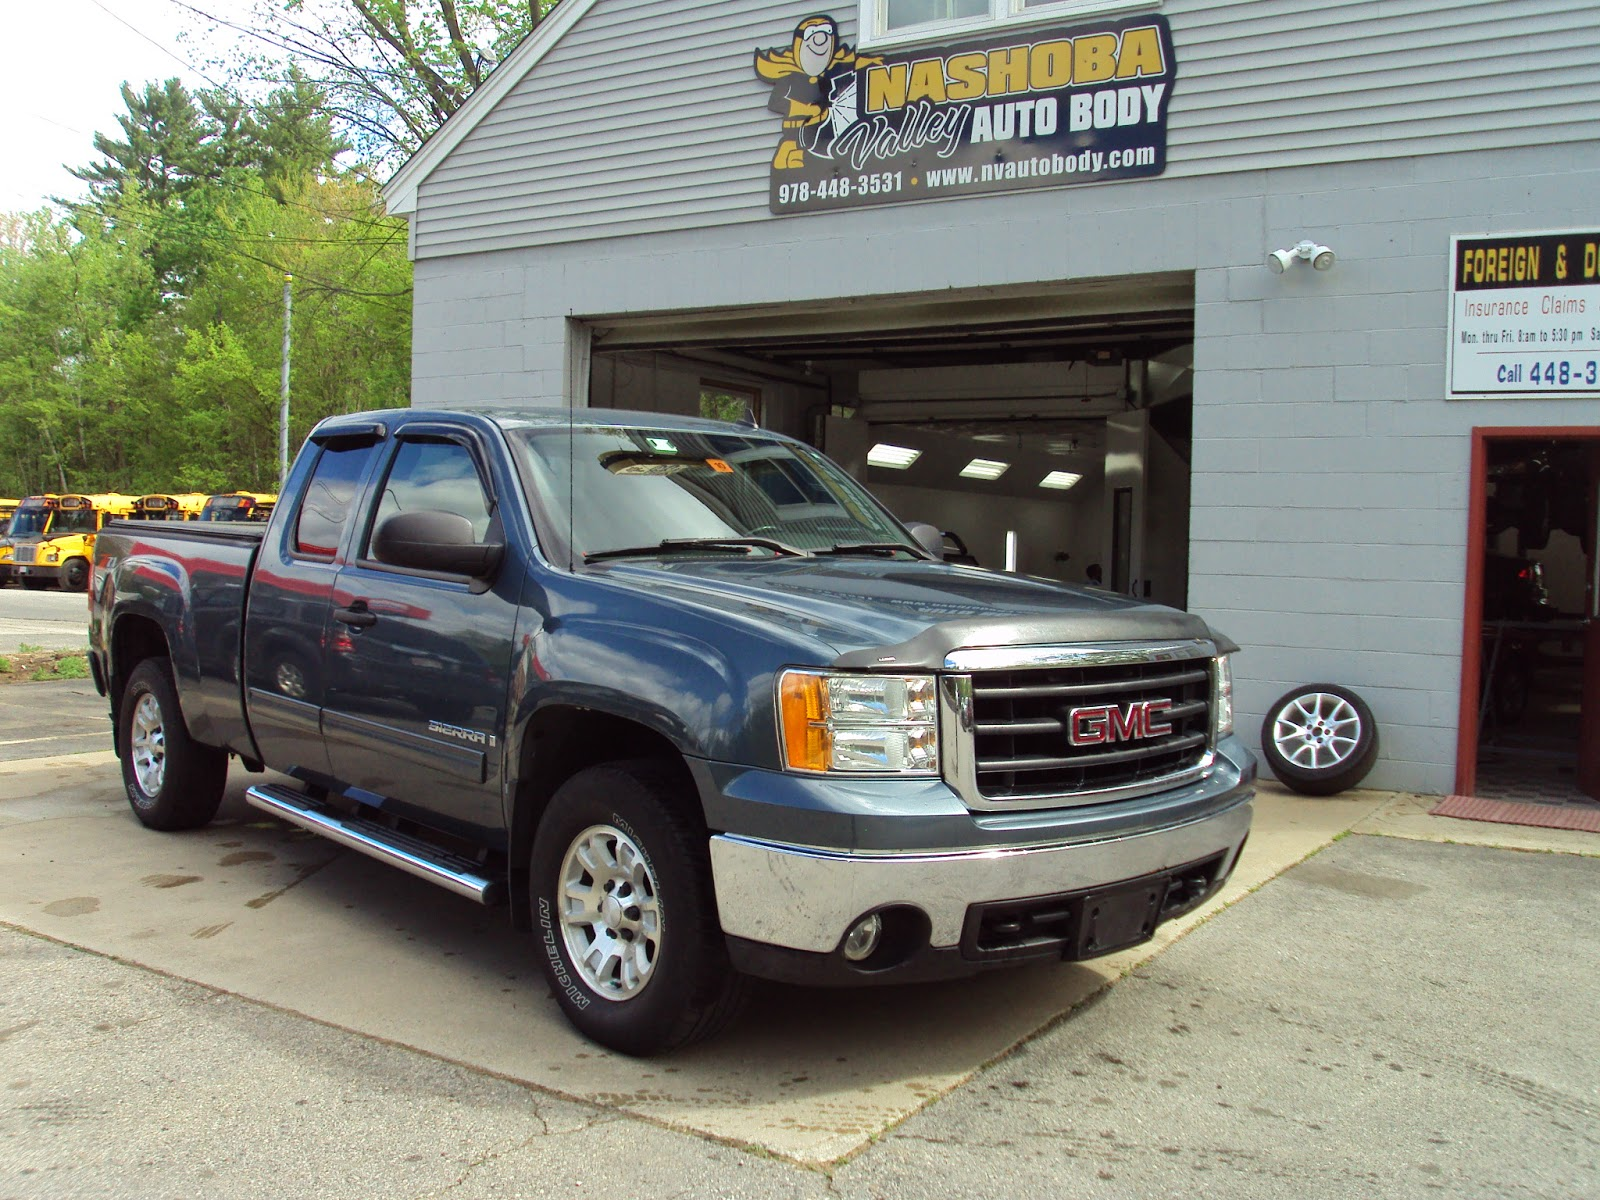 2007 gmc siera z71 v8 4x4 auto ac x tended cab runs drives great no issues at all 13 950 00 b o ask for gerry cell 978 877 7074